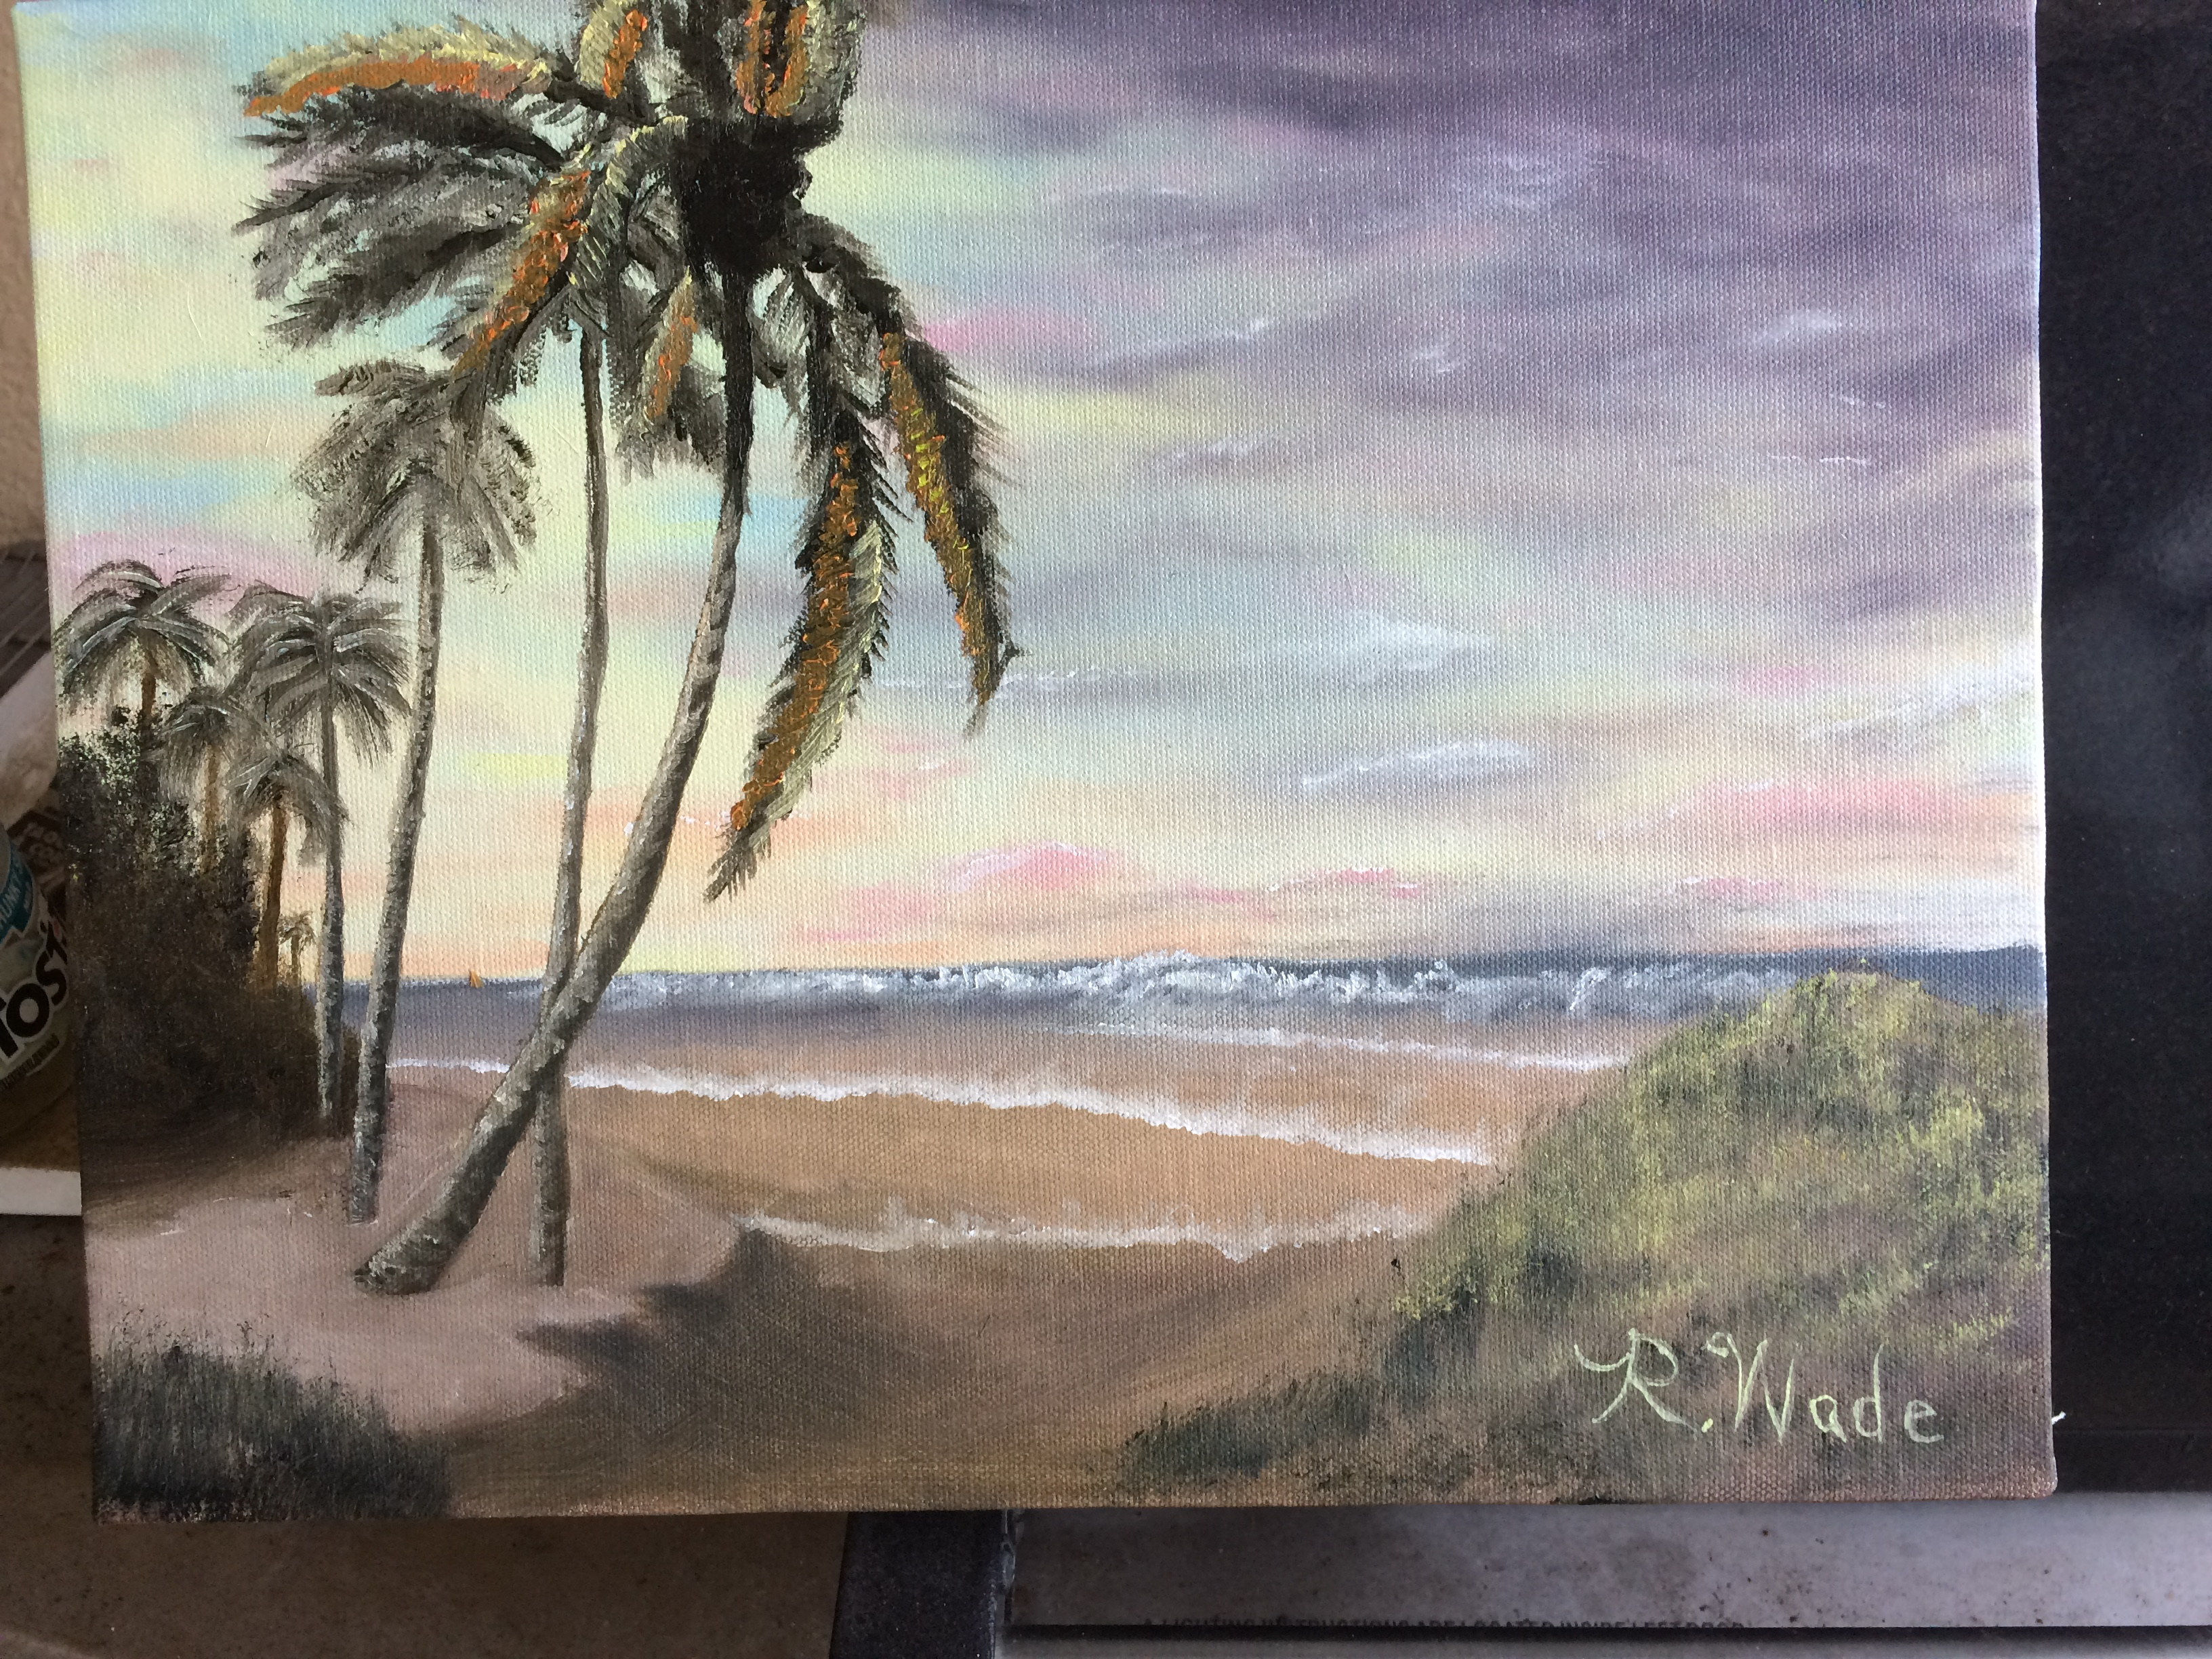 When artist Kevin Hill came to Florida I attended his multi-day class which I greatly enjoyed and learned a great deal. This is my first tropical scene based on Kevin's work.